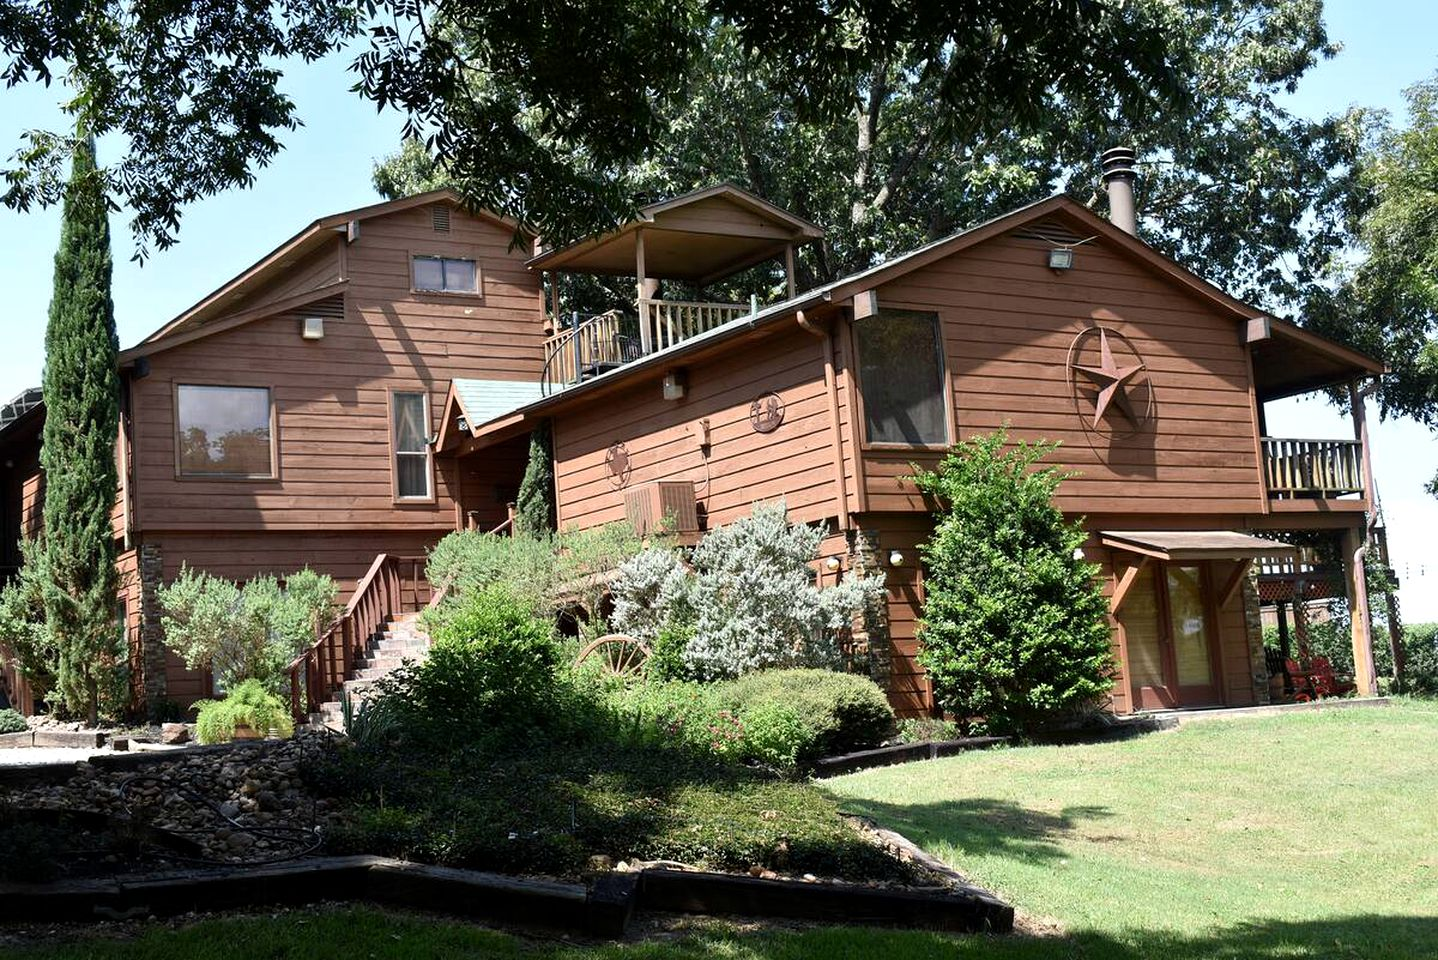 One of the best large cabin rentals for family vacations in Texas